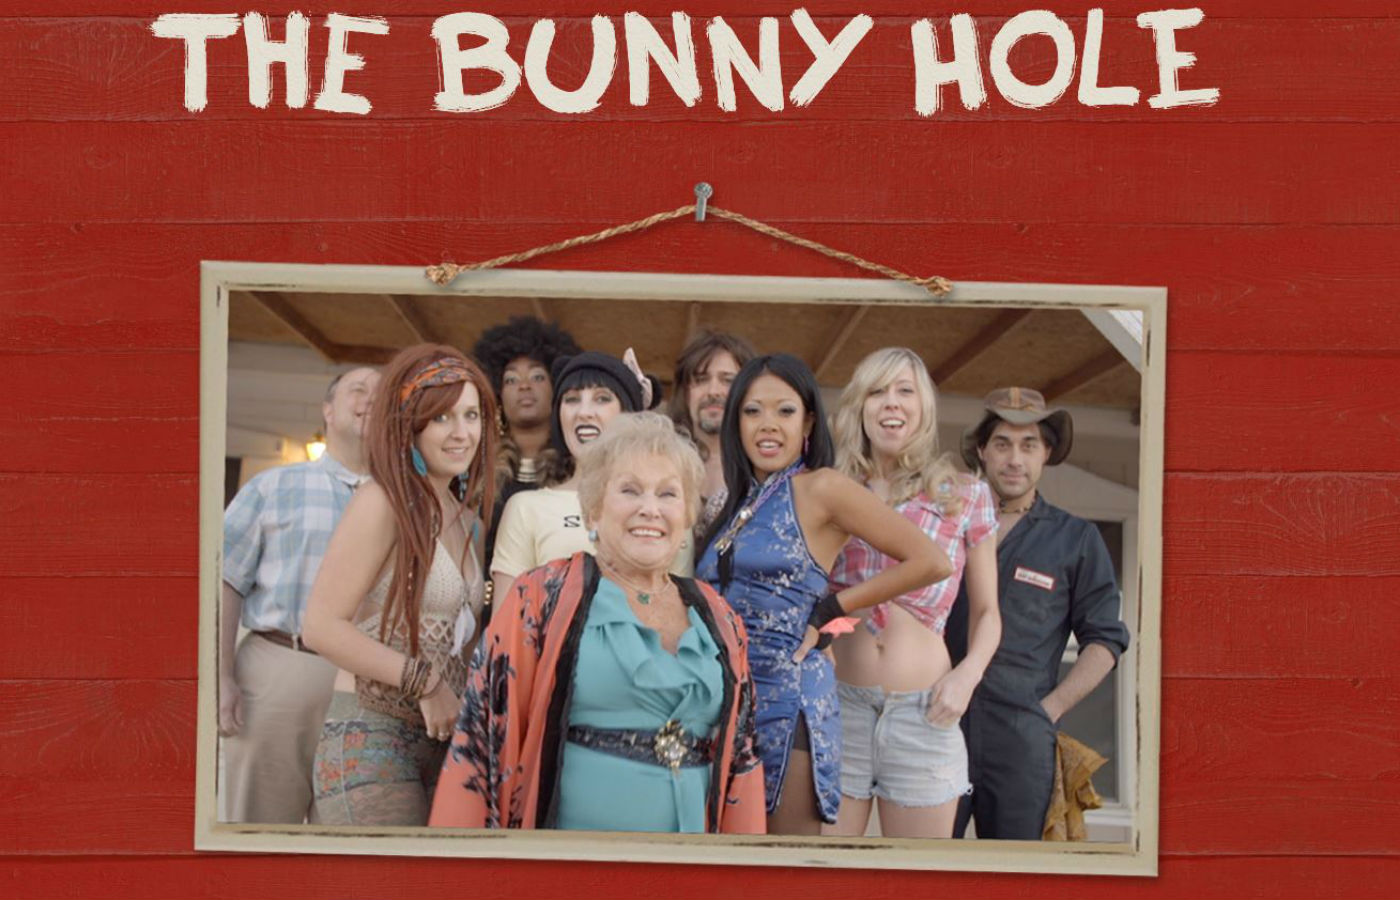 The Bunny Hole - Julia adventured to the small town of Pahrump, Nevada to film a new comedy series The Bunny Hole, a project that she co-starred in and helped develop alongside the show's creator Ken Davenport. Similar in style to Reno 911, the show is an absurd comedy about a struggling brothel trying to stay afloat.